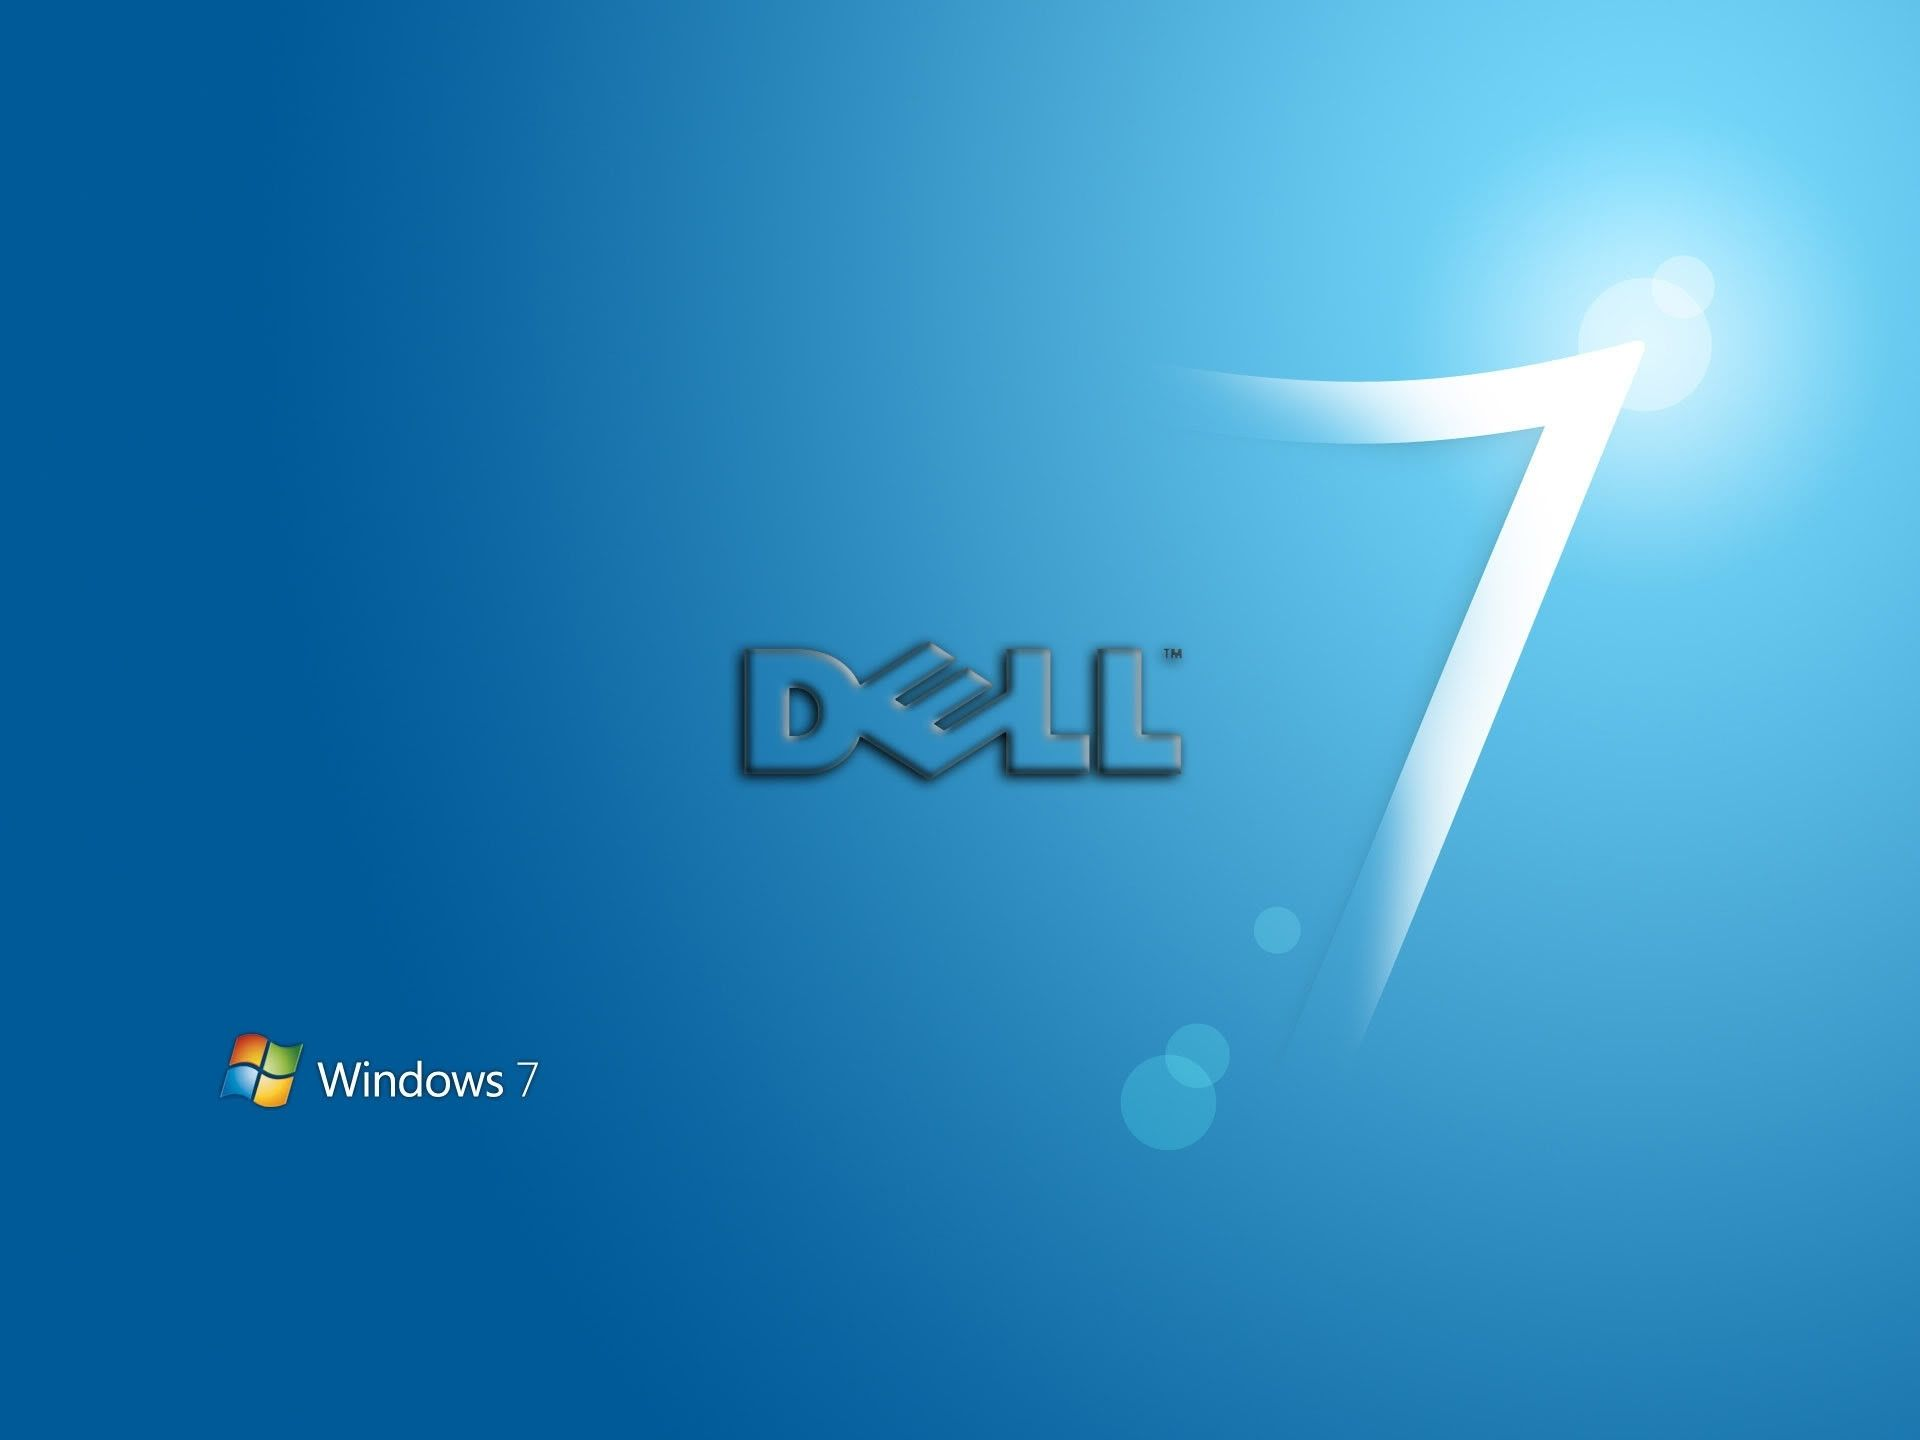 10 Best Dell Windows 7 Wallpaper FULL HD 1080p For PC Background 1920x1440